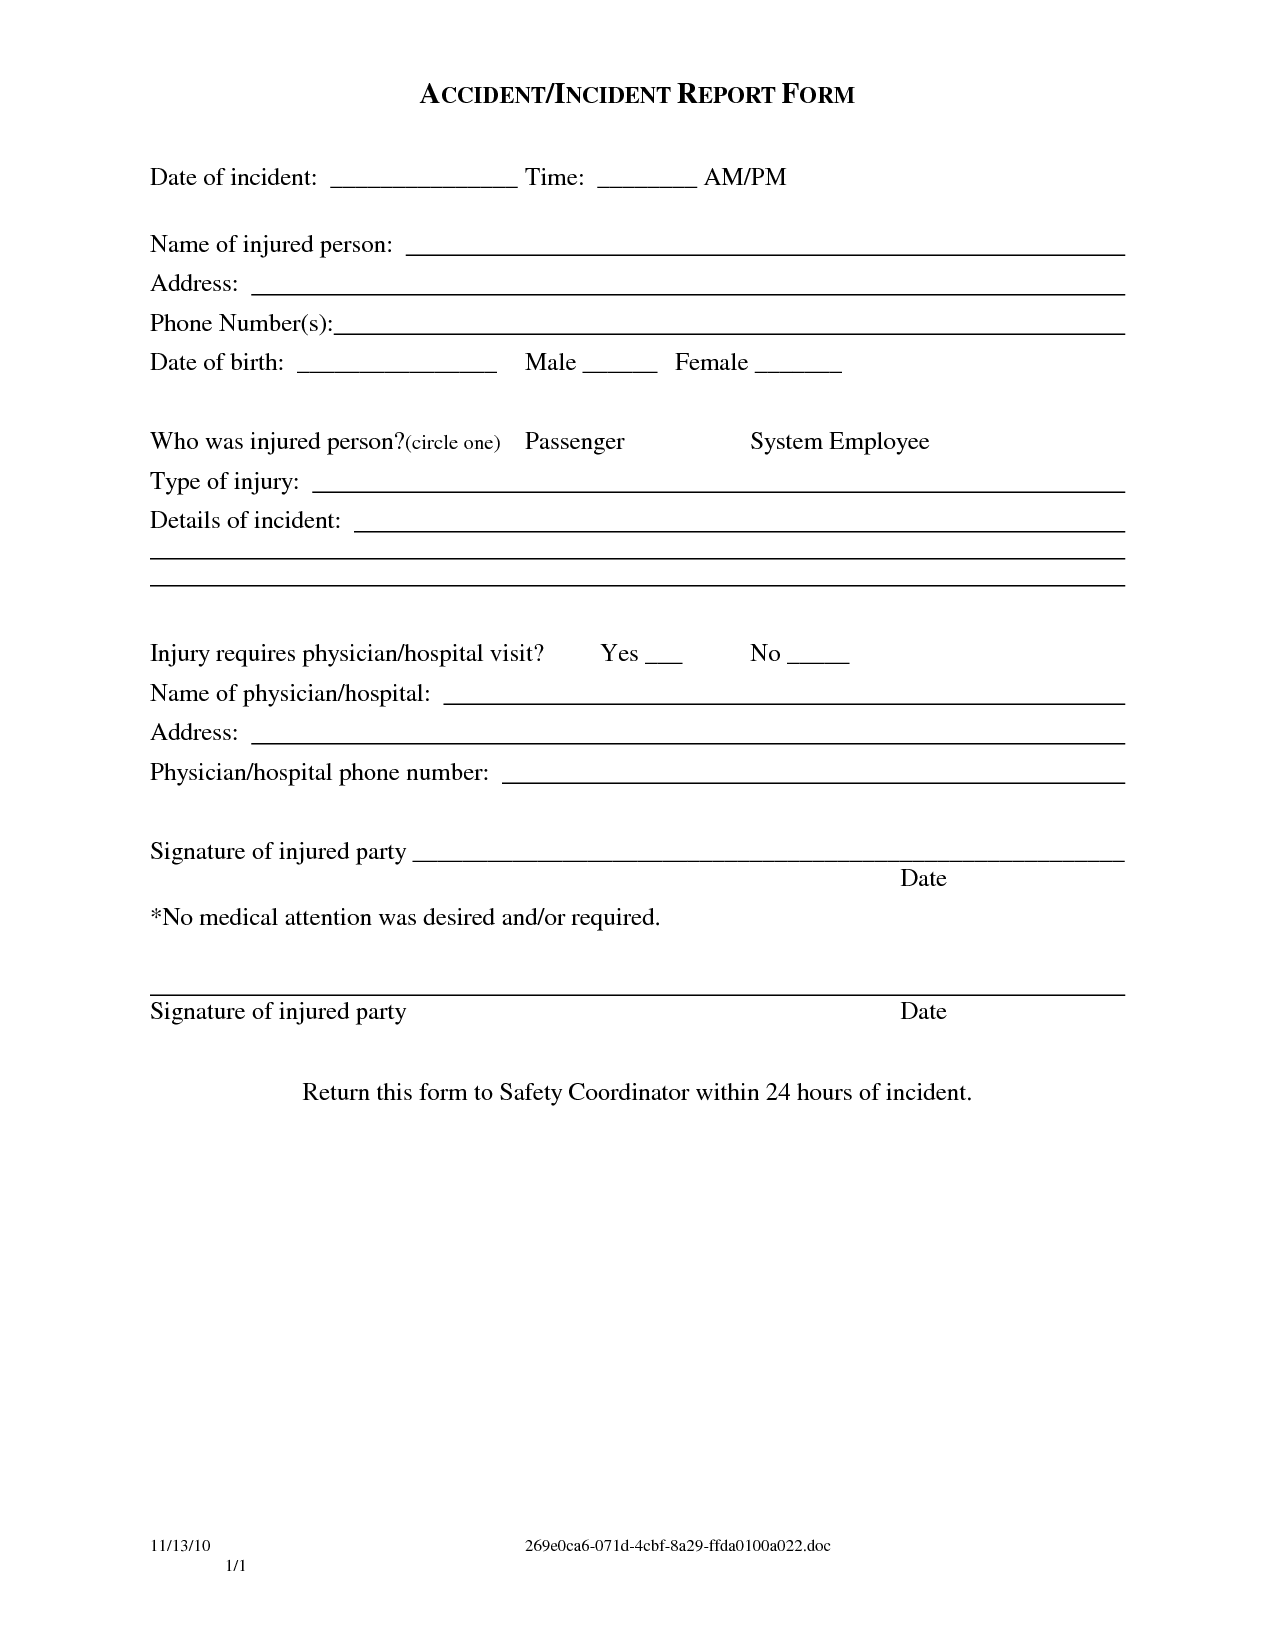 Purchase Agreement Form For Car images simple purchase agreement – Simple Sales Contract Form